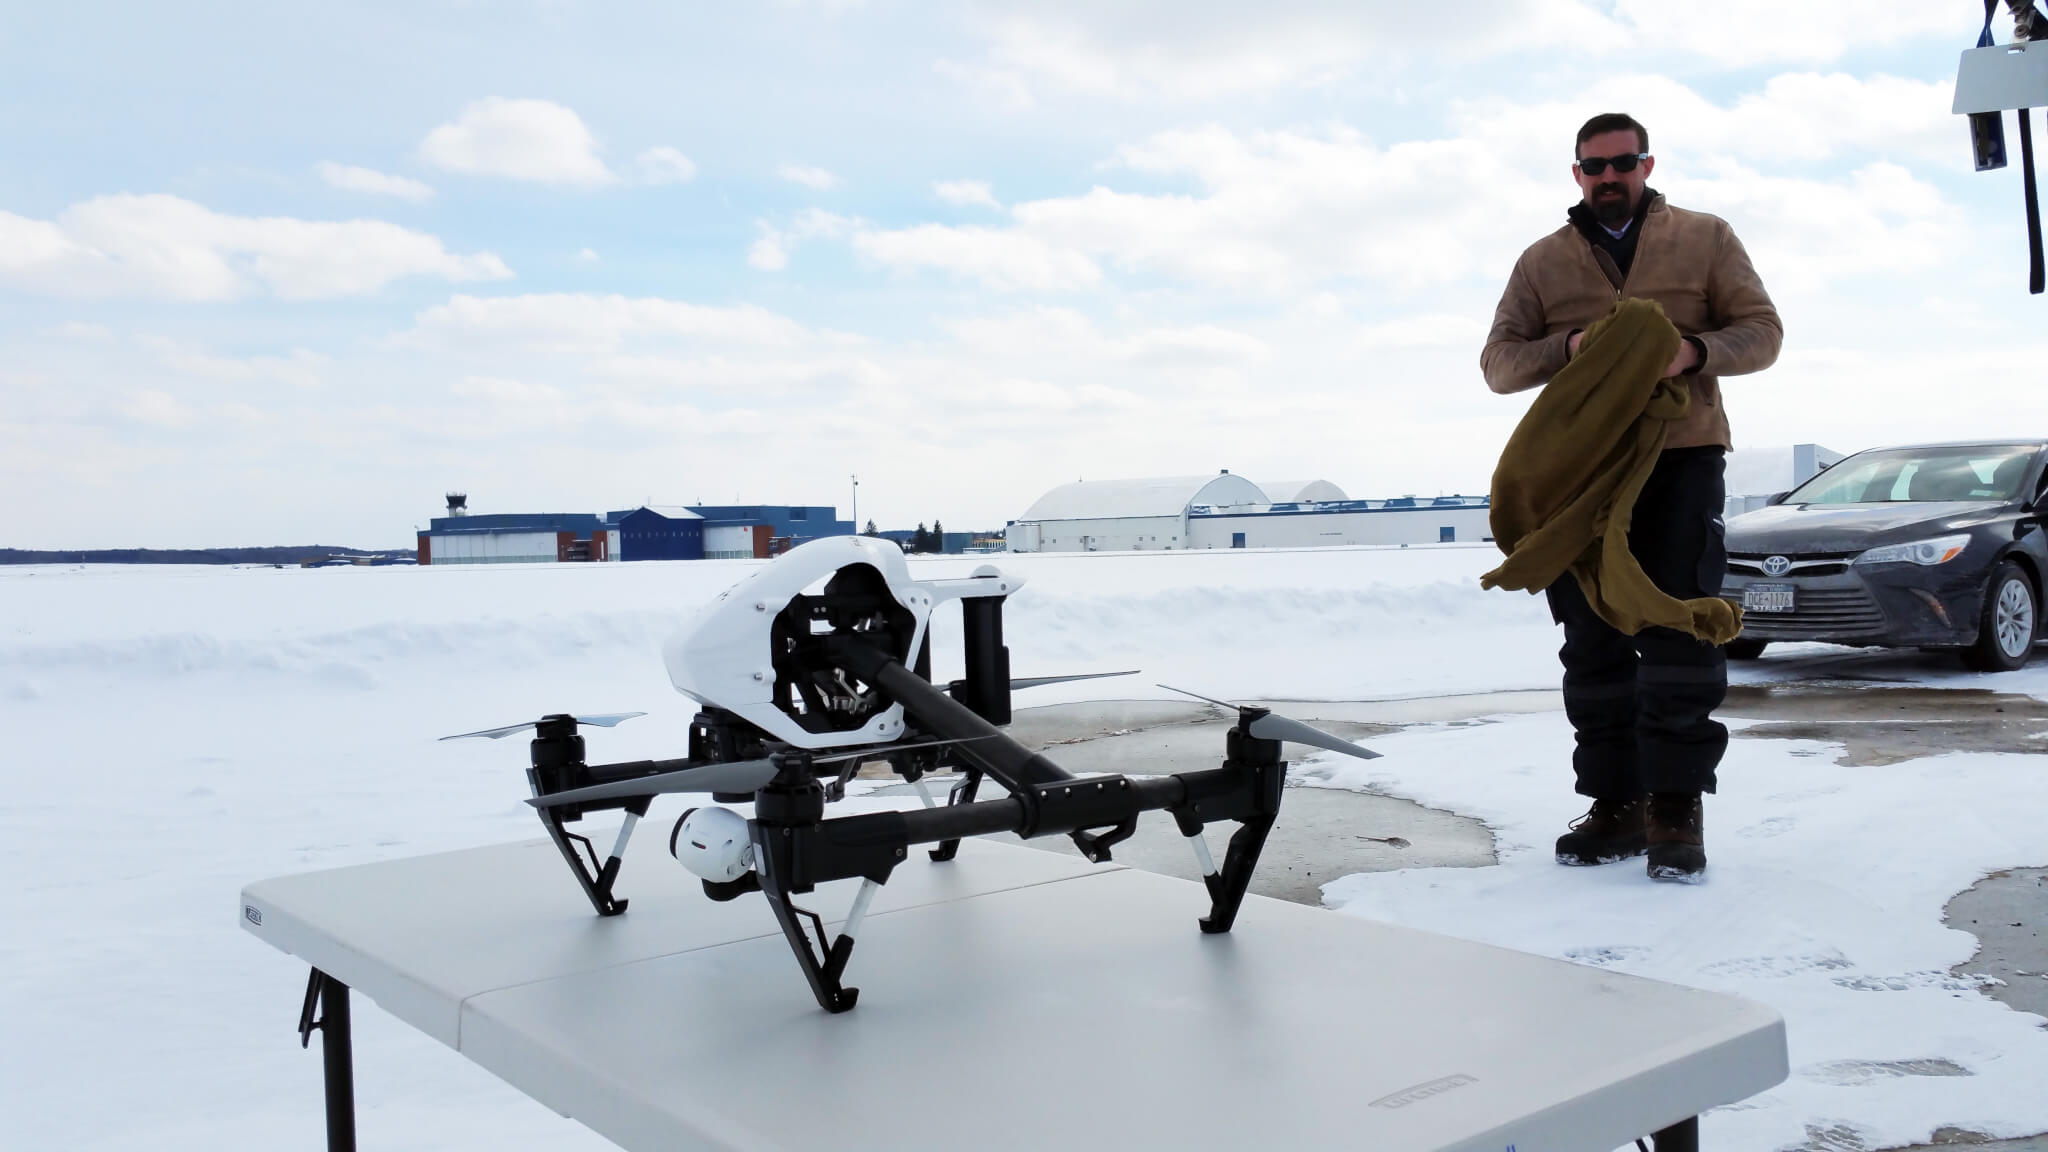 Winter Drone Testing at NY UAS Test Site